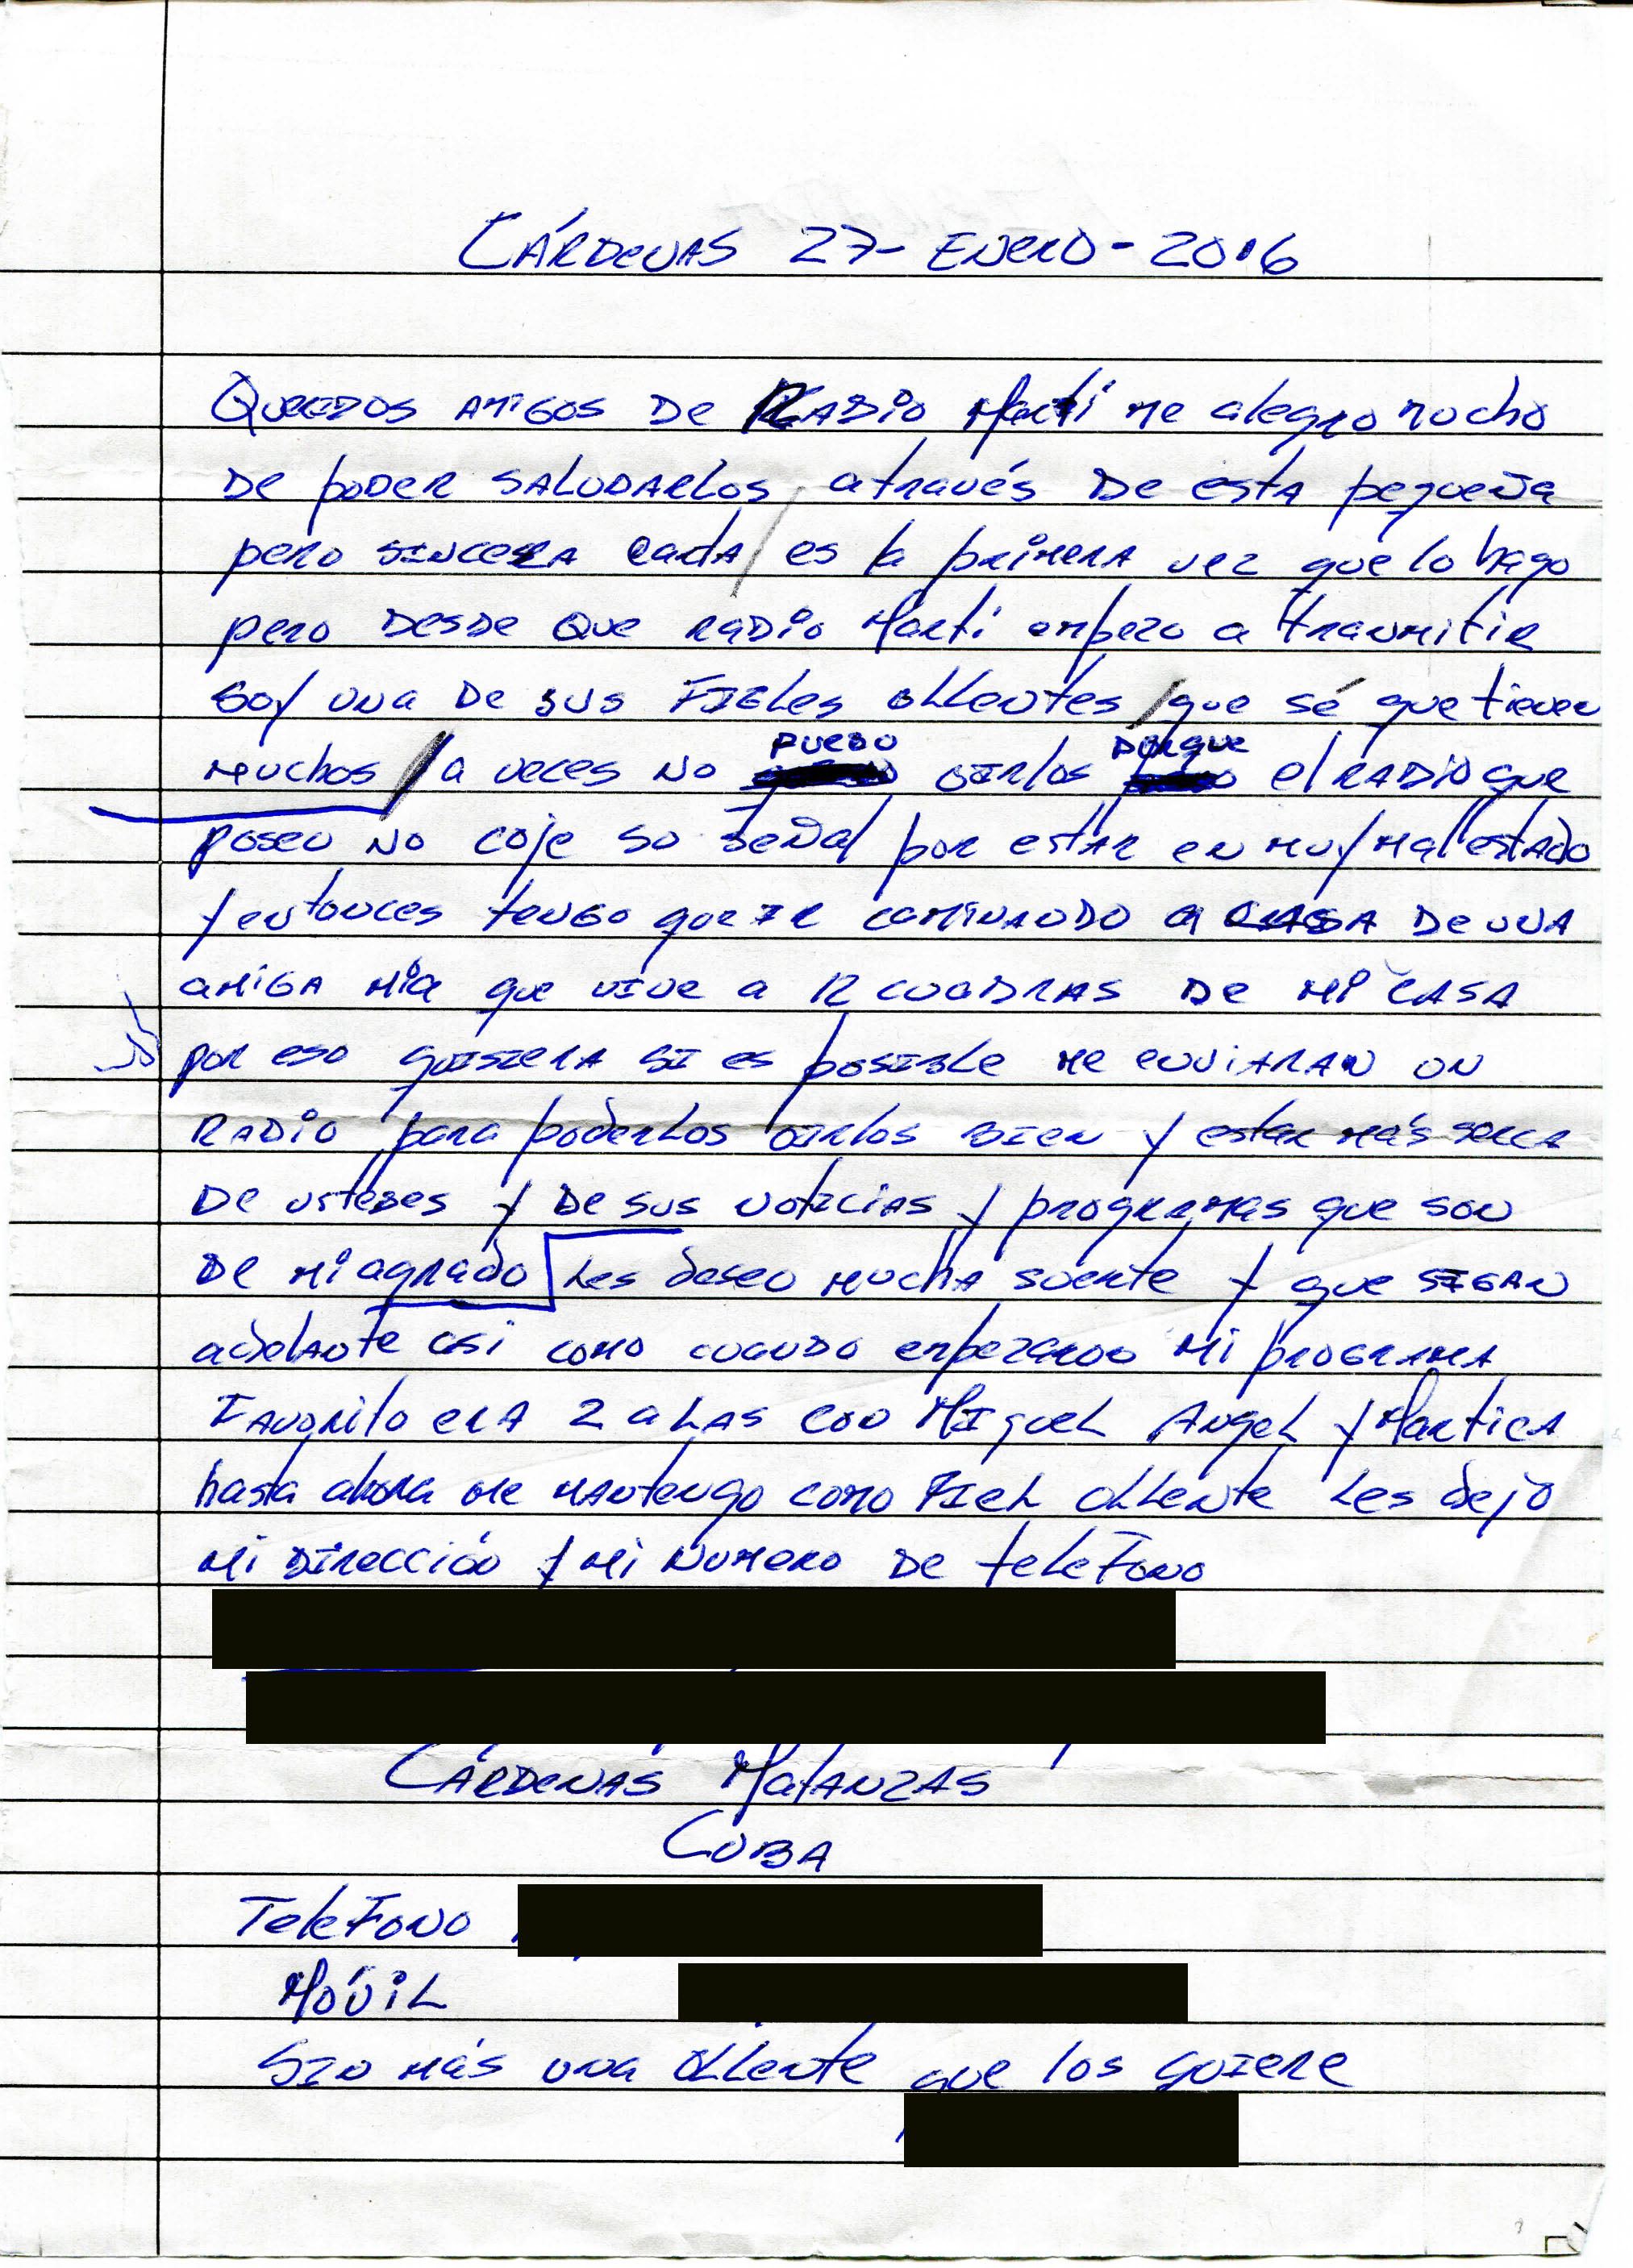 Martís receiving audience letters directly from Cuba for first time